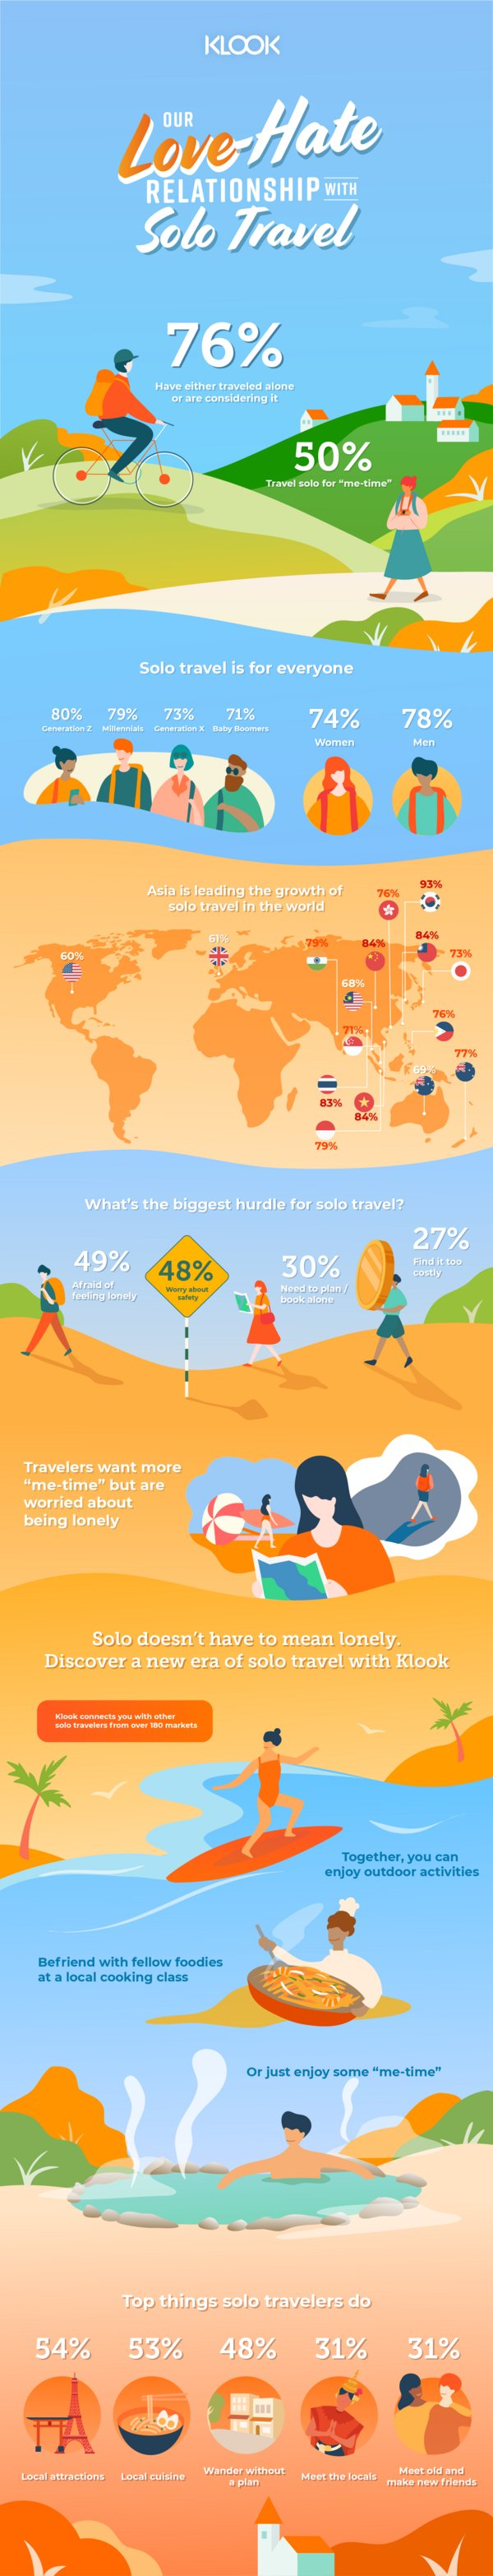 Infographic for Klook's Solo Travel survey